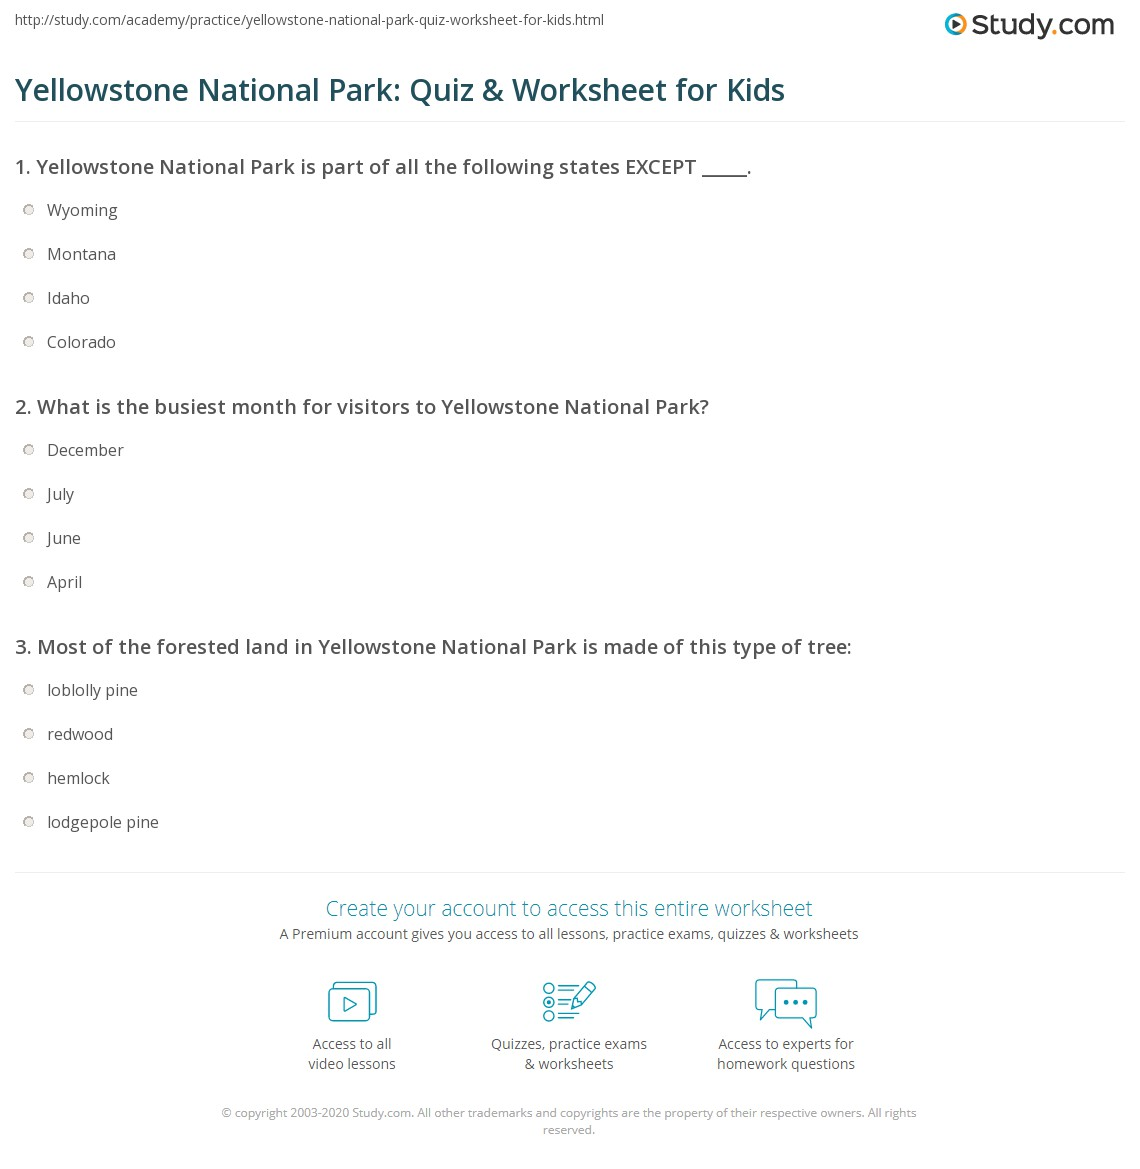 Yellowstone National Park: Quiz & Worksheet for Kids | Study.com